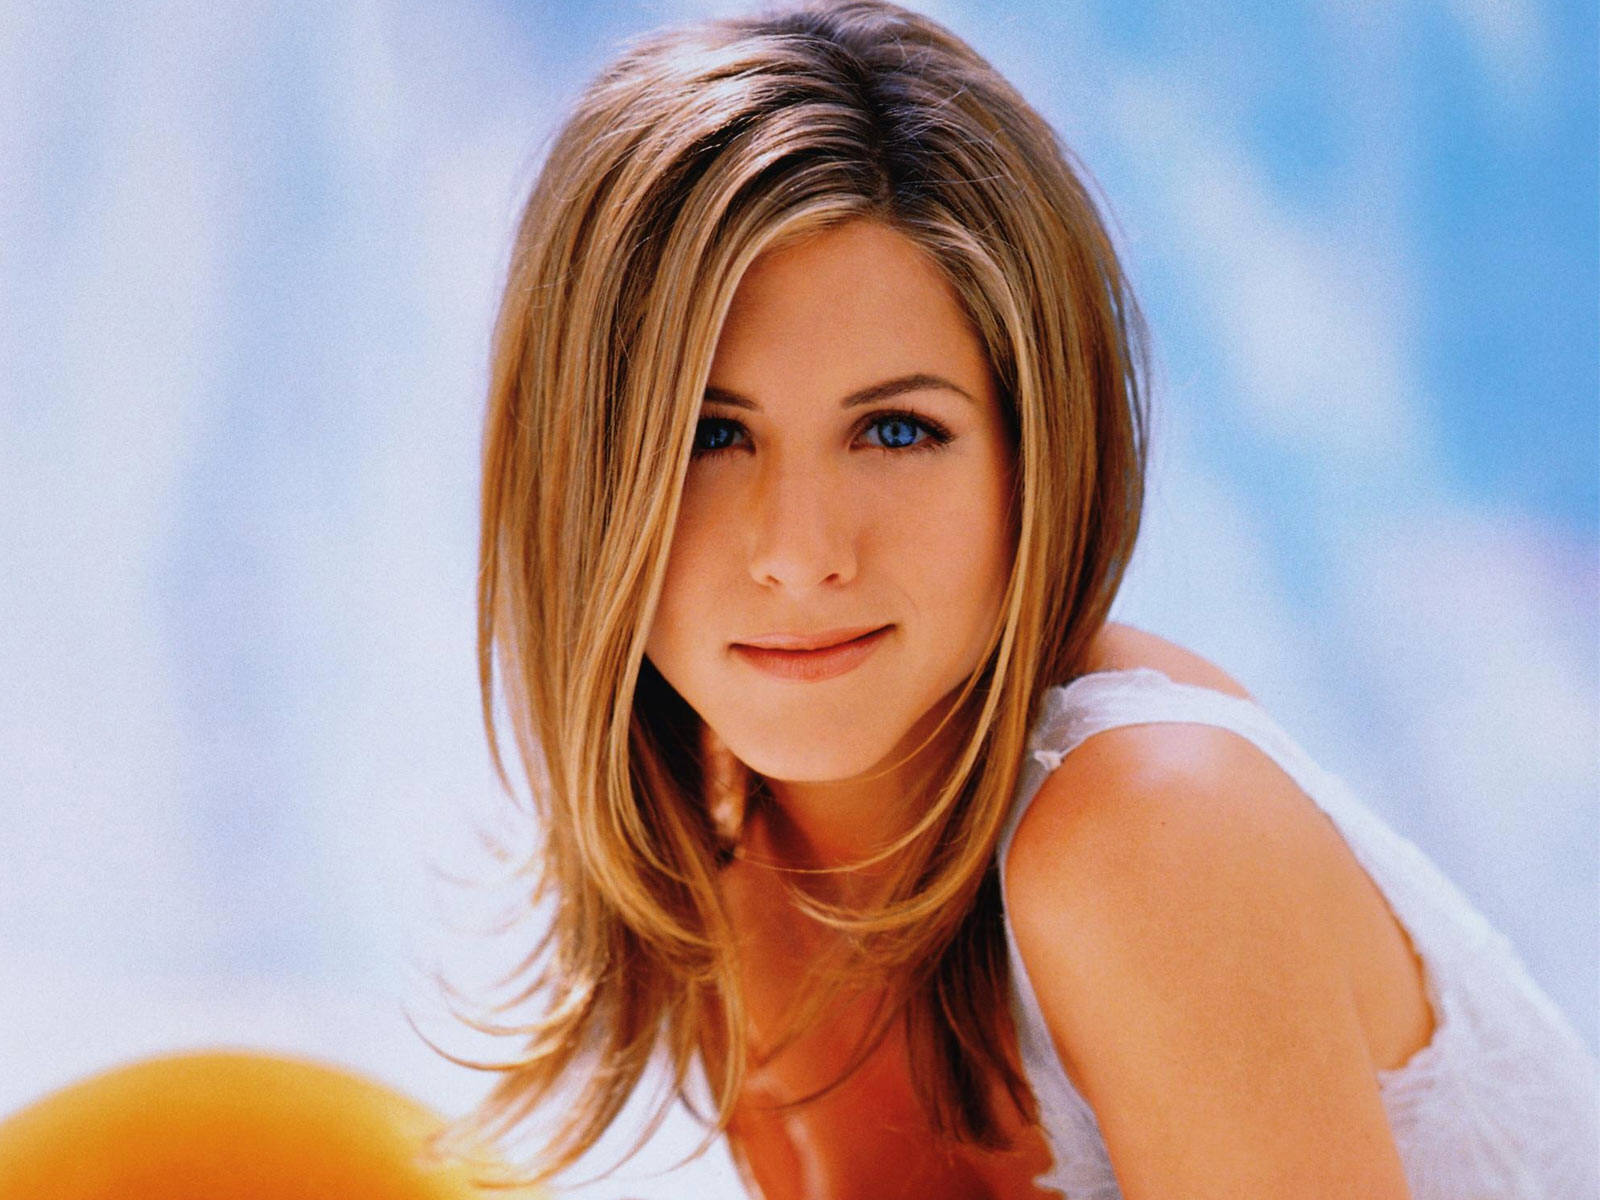 http://1.bp.blogspot.com/-mL9TNnlgceQ/T9TXGiyrvPI/AAAAAAAACVg/bE9Rk73tIc8/s1600/jennifer%20aniston%20wallpaper%20hd%20ii.jpg